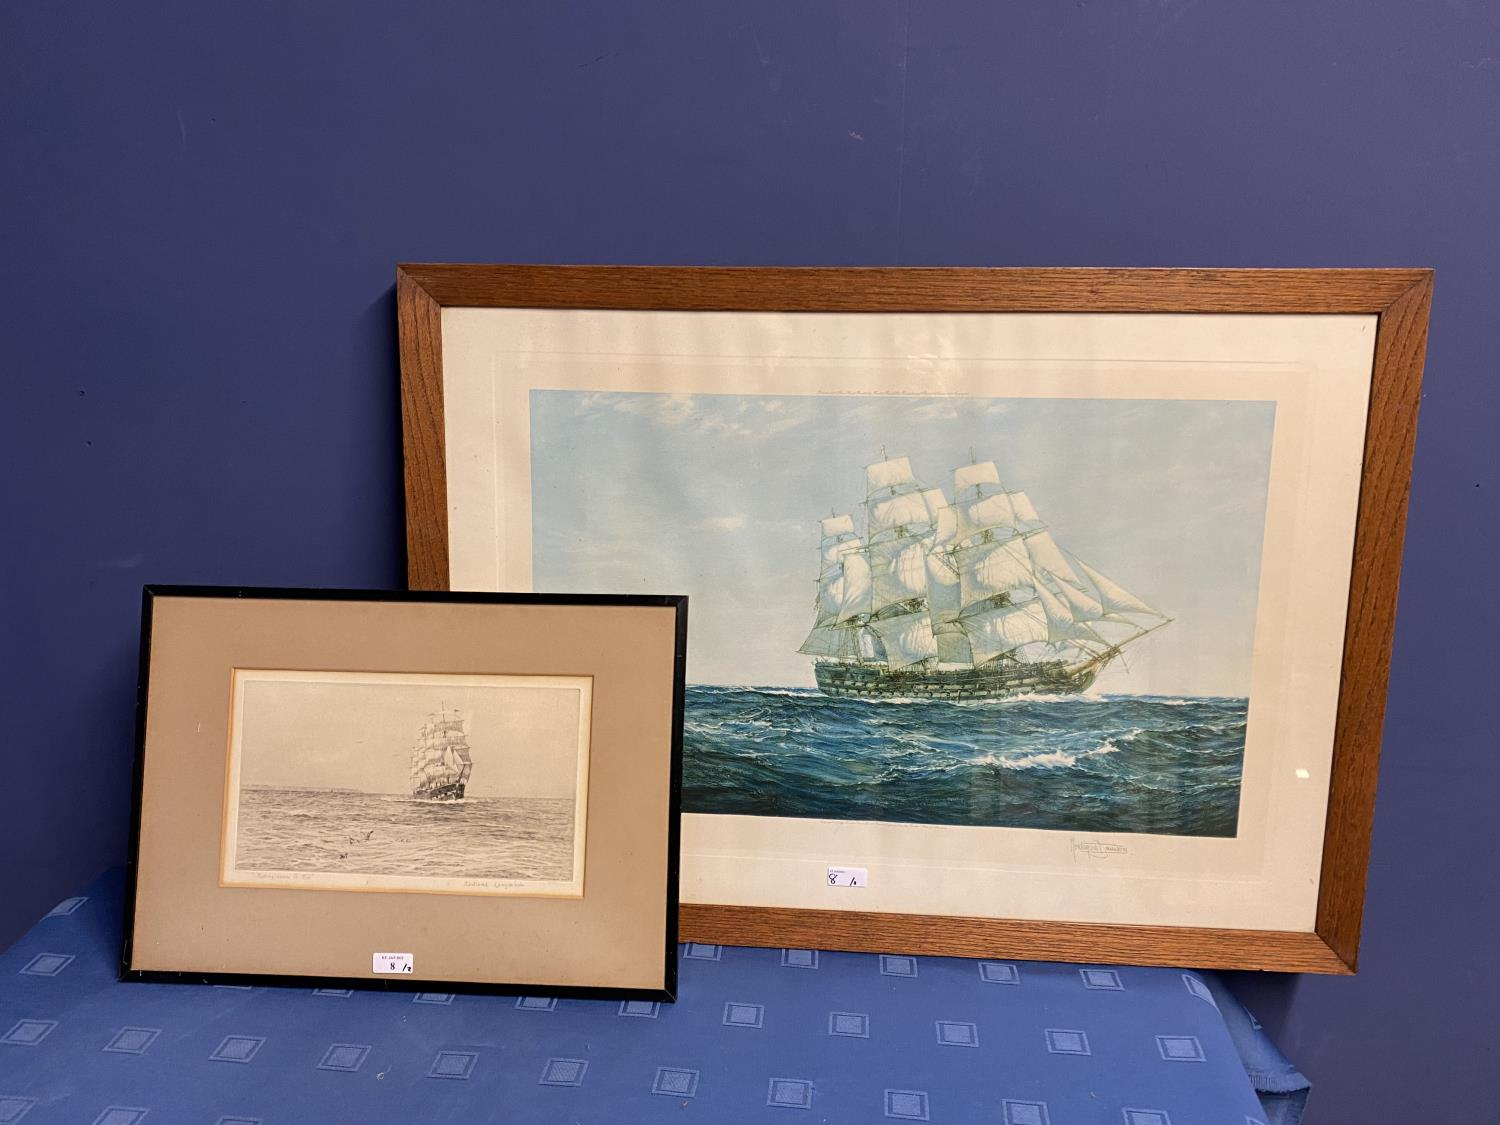 Black and White etching on Paper, Sailing ship fully rigged at sea, 17 x 30cm , signed and titled in